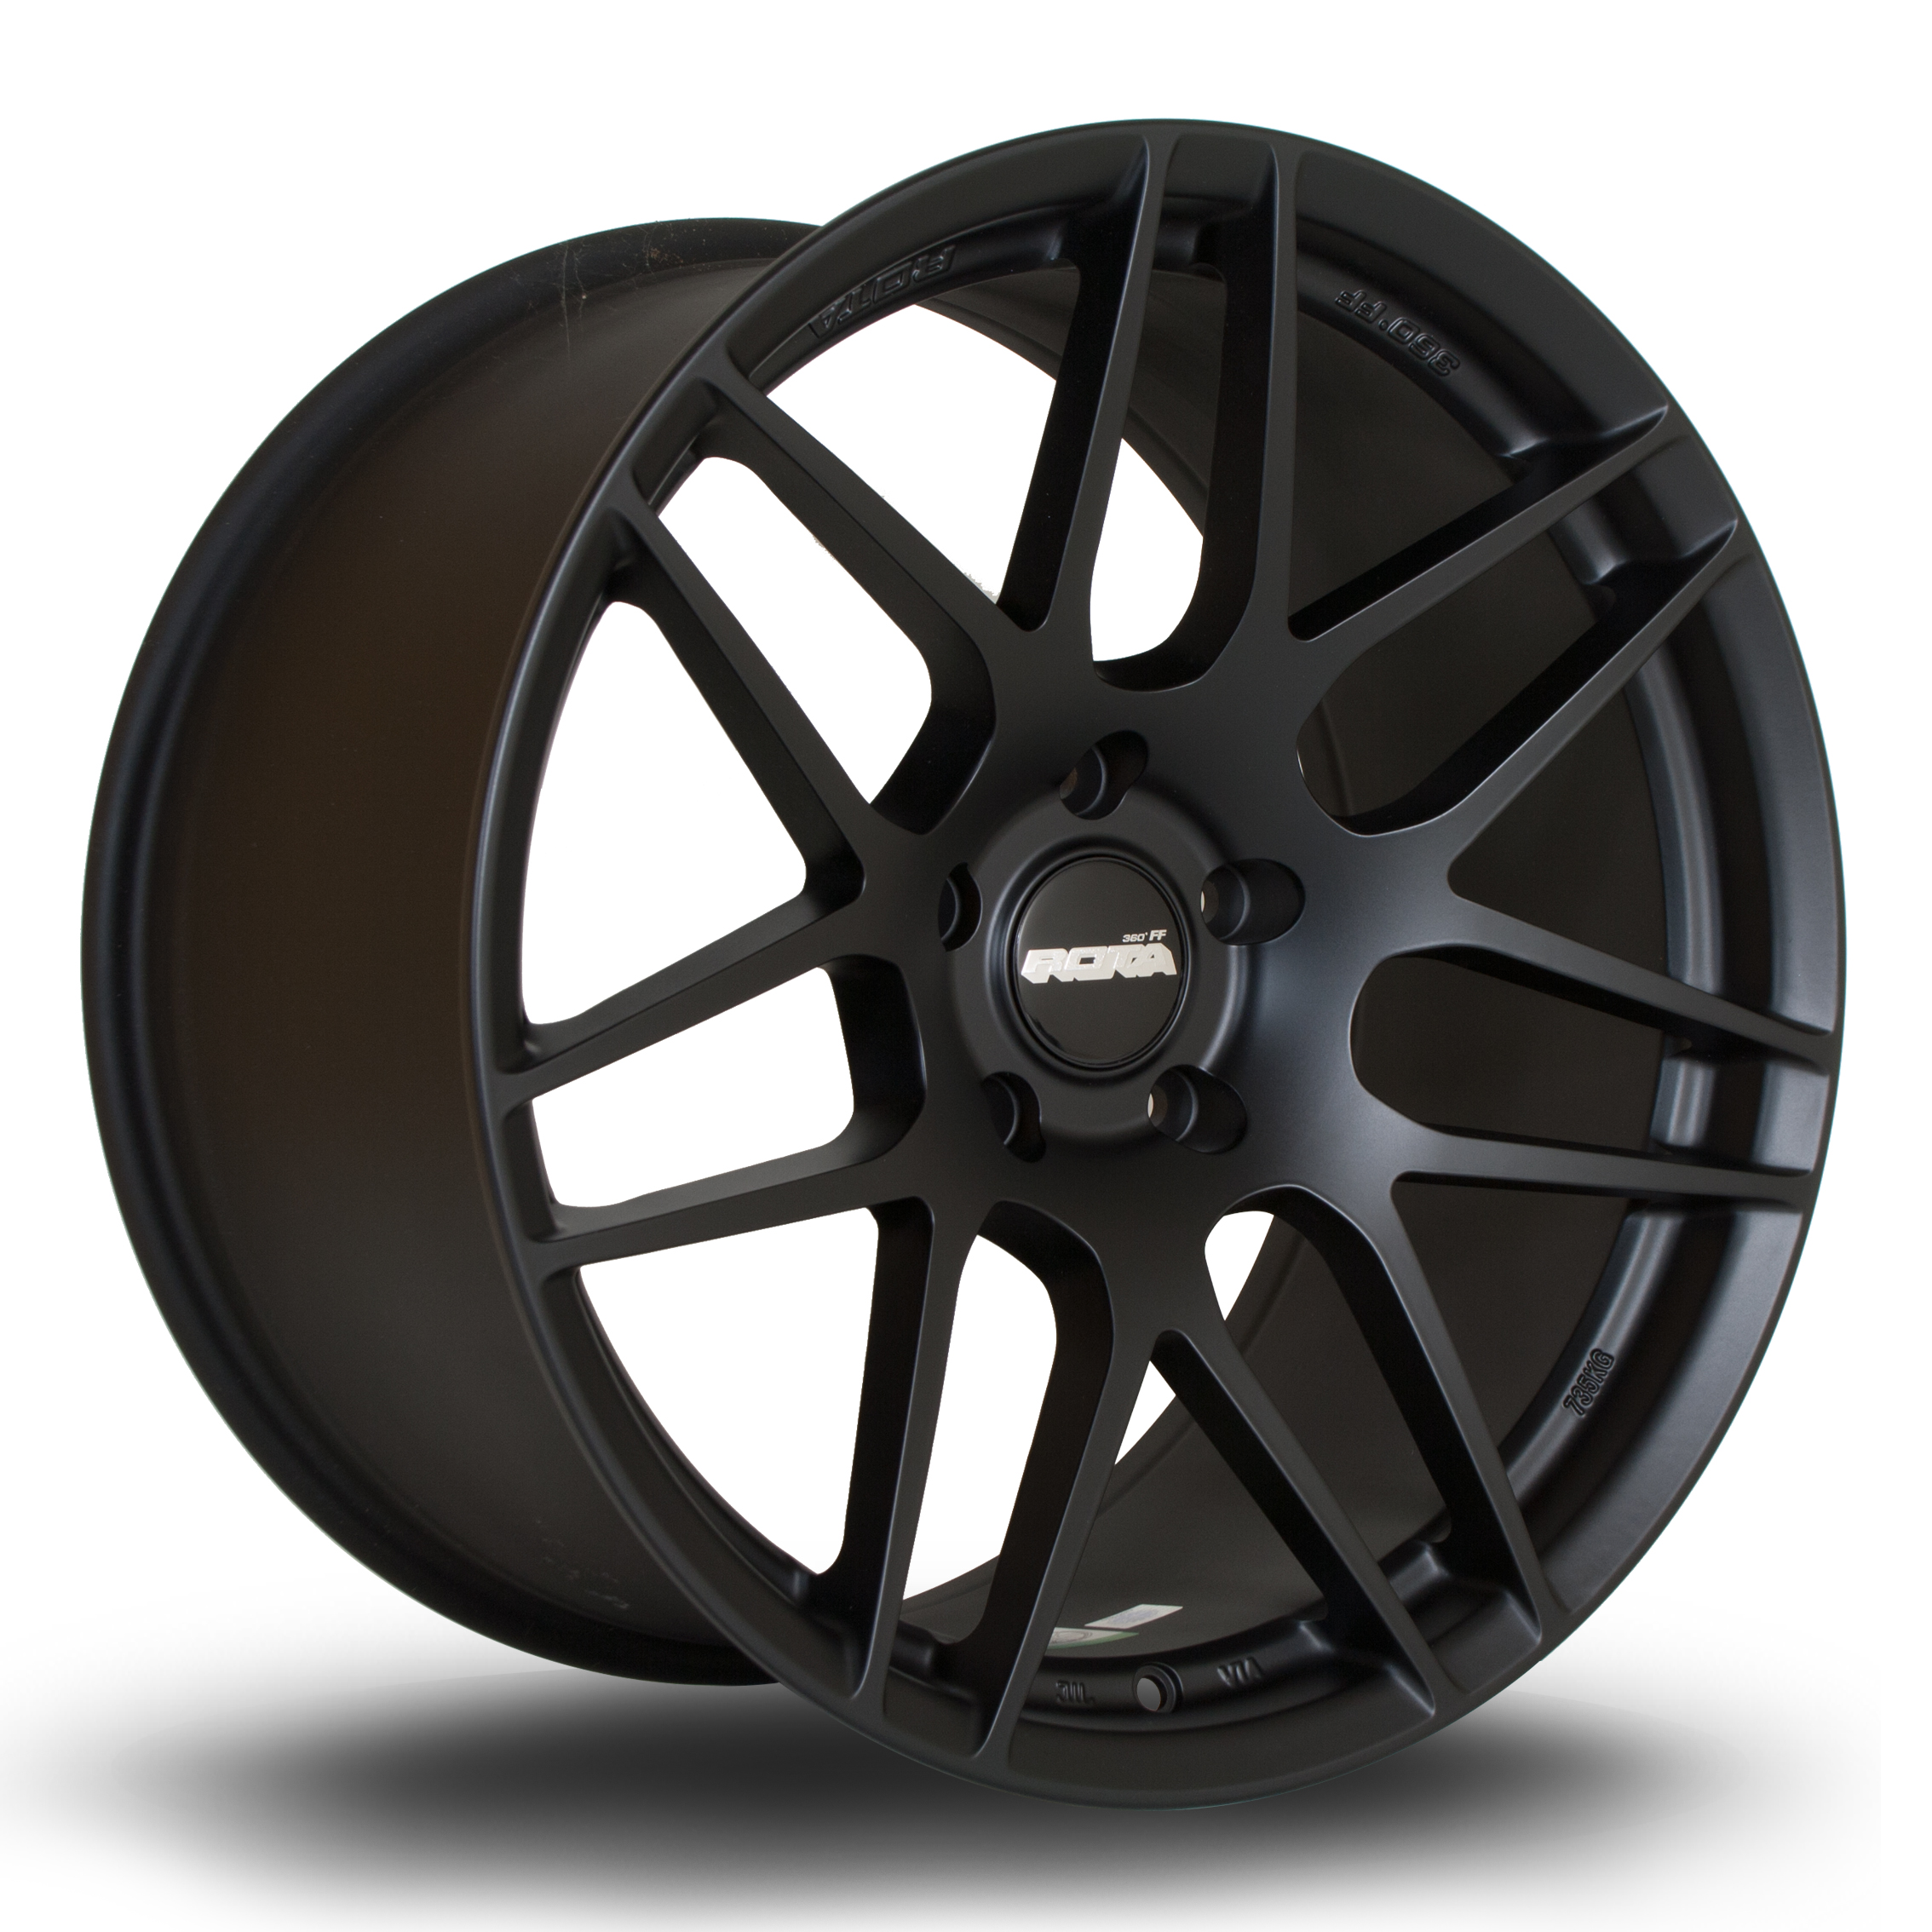 Rota FF02 wheels